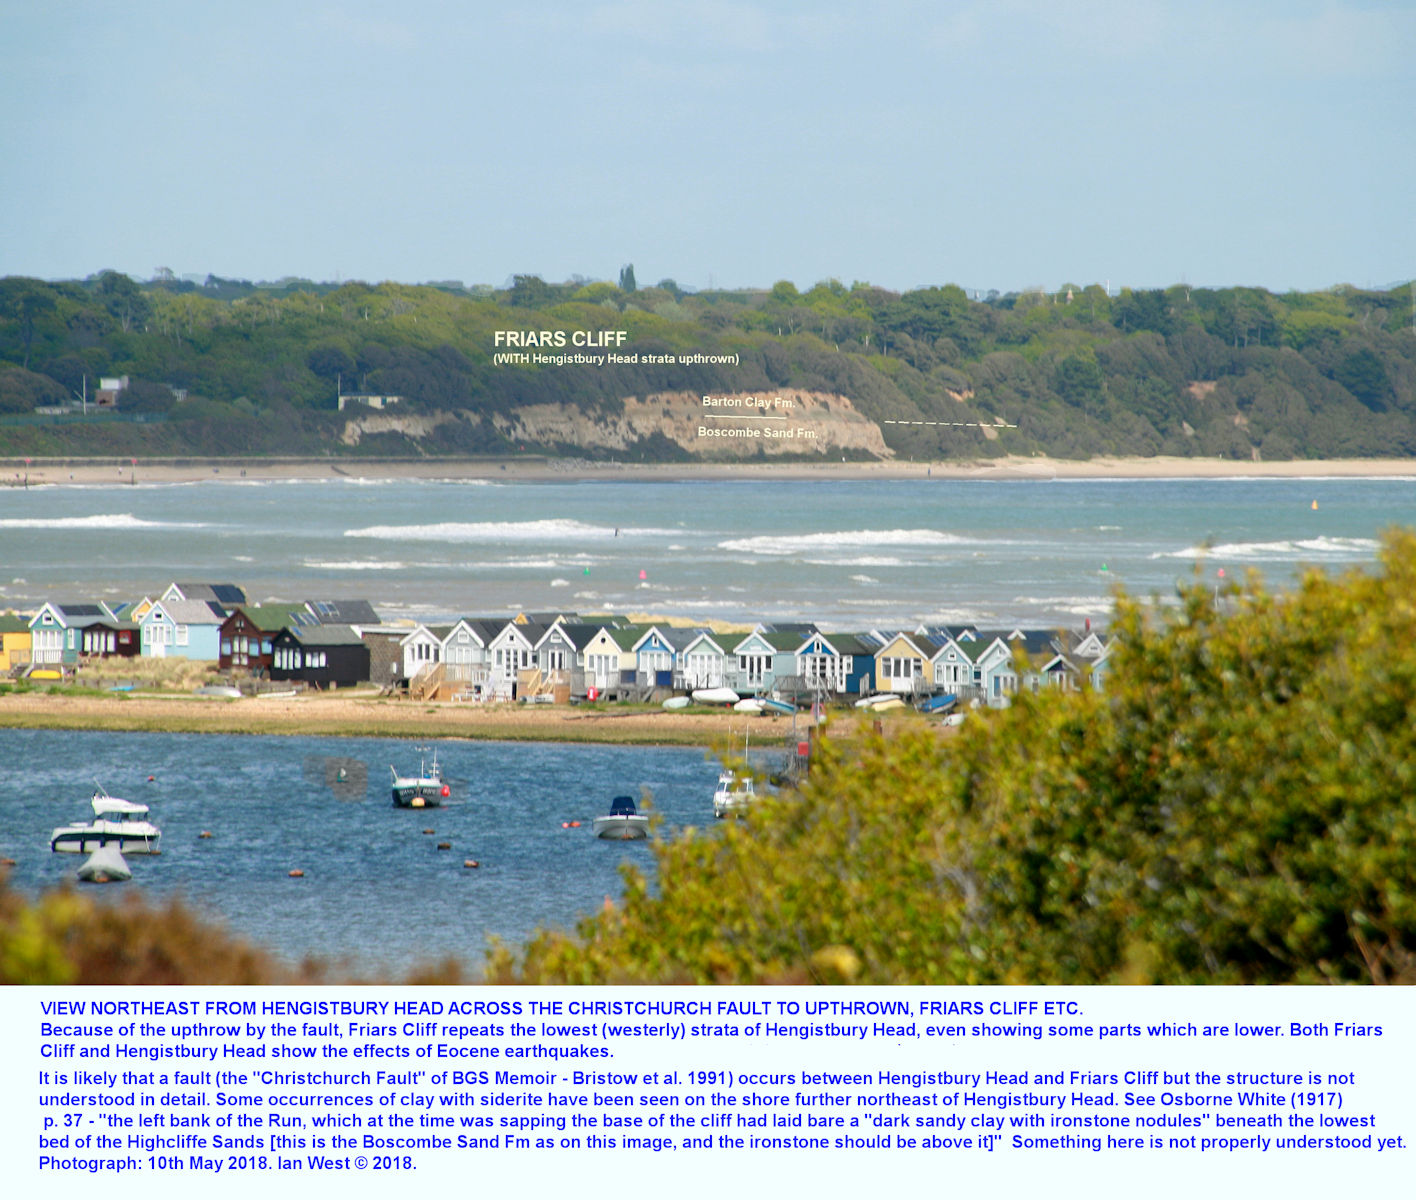 Friars Cliff is separated from Hengistbury Head, by a fault; it shows similar struata but there are problems with details of correlation and structure